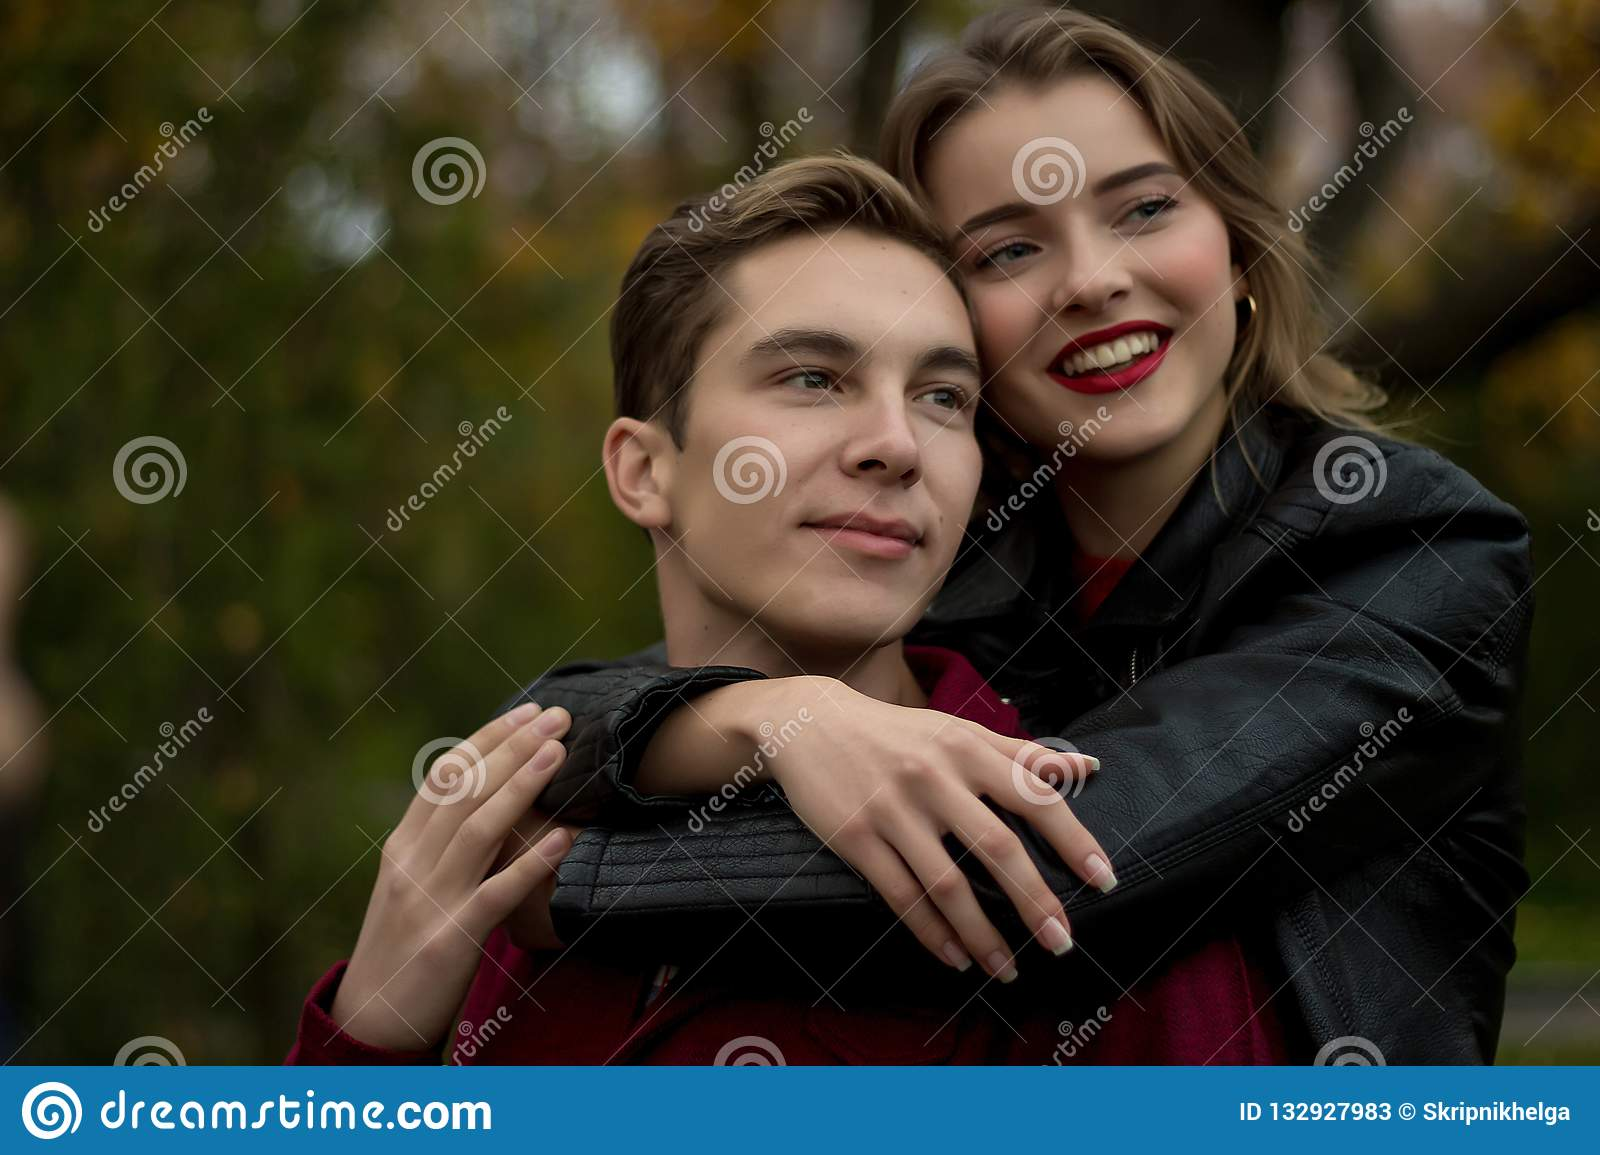 Girl Hugs A Guy And Smiles, Autumn. Hug From Behind